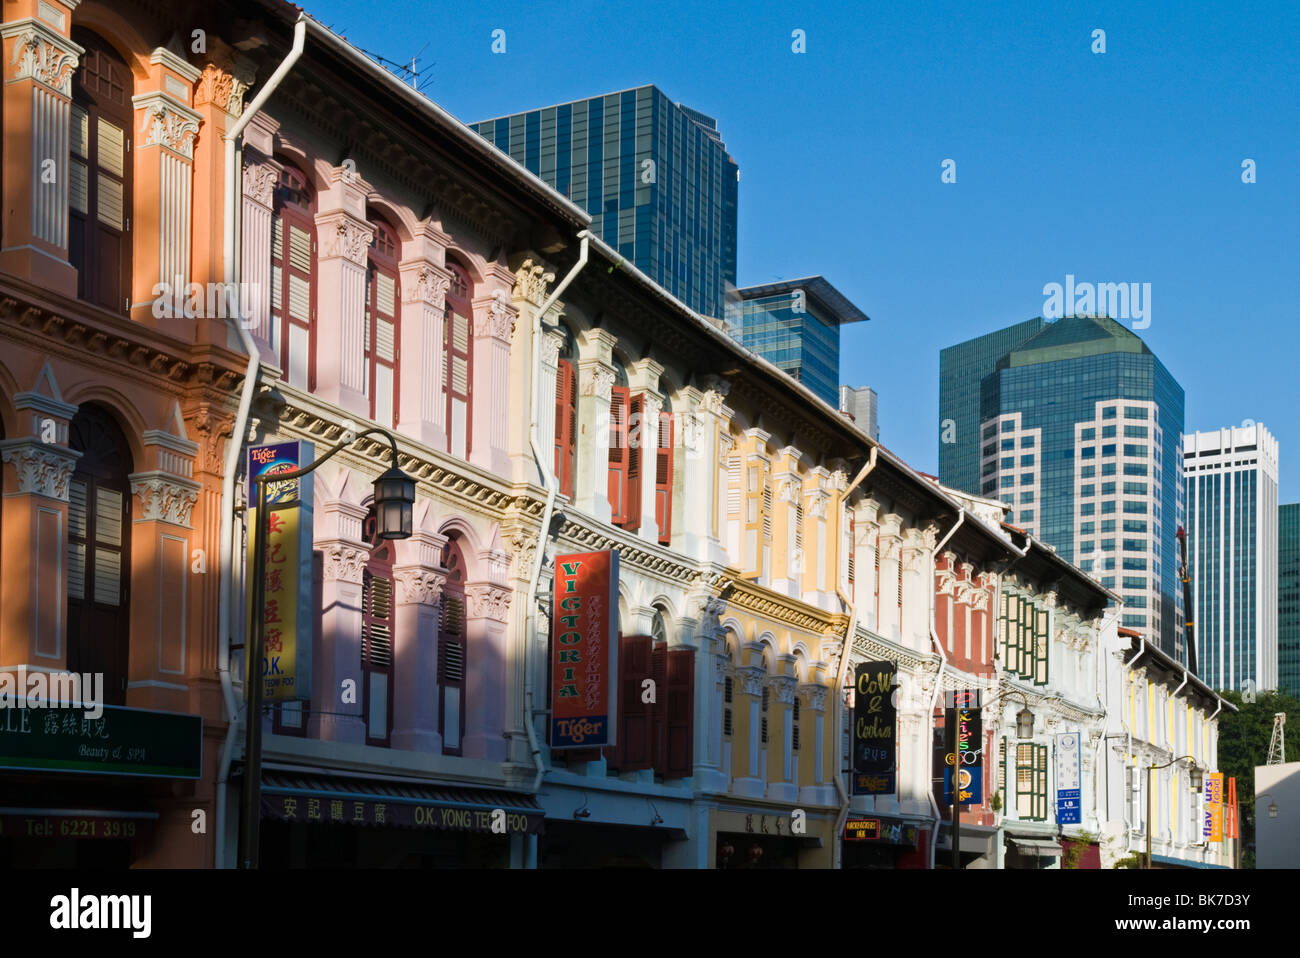 Old Chinese shophouses along Mosque Street in Singapores Chinatown. - Stock Image